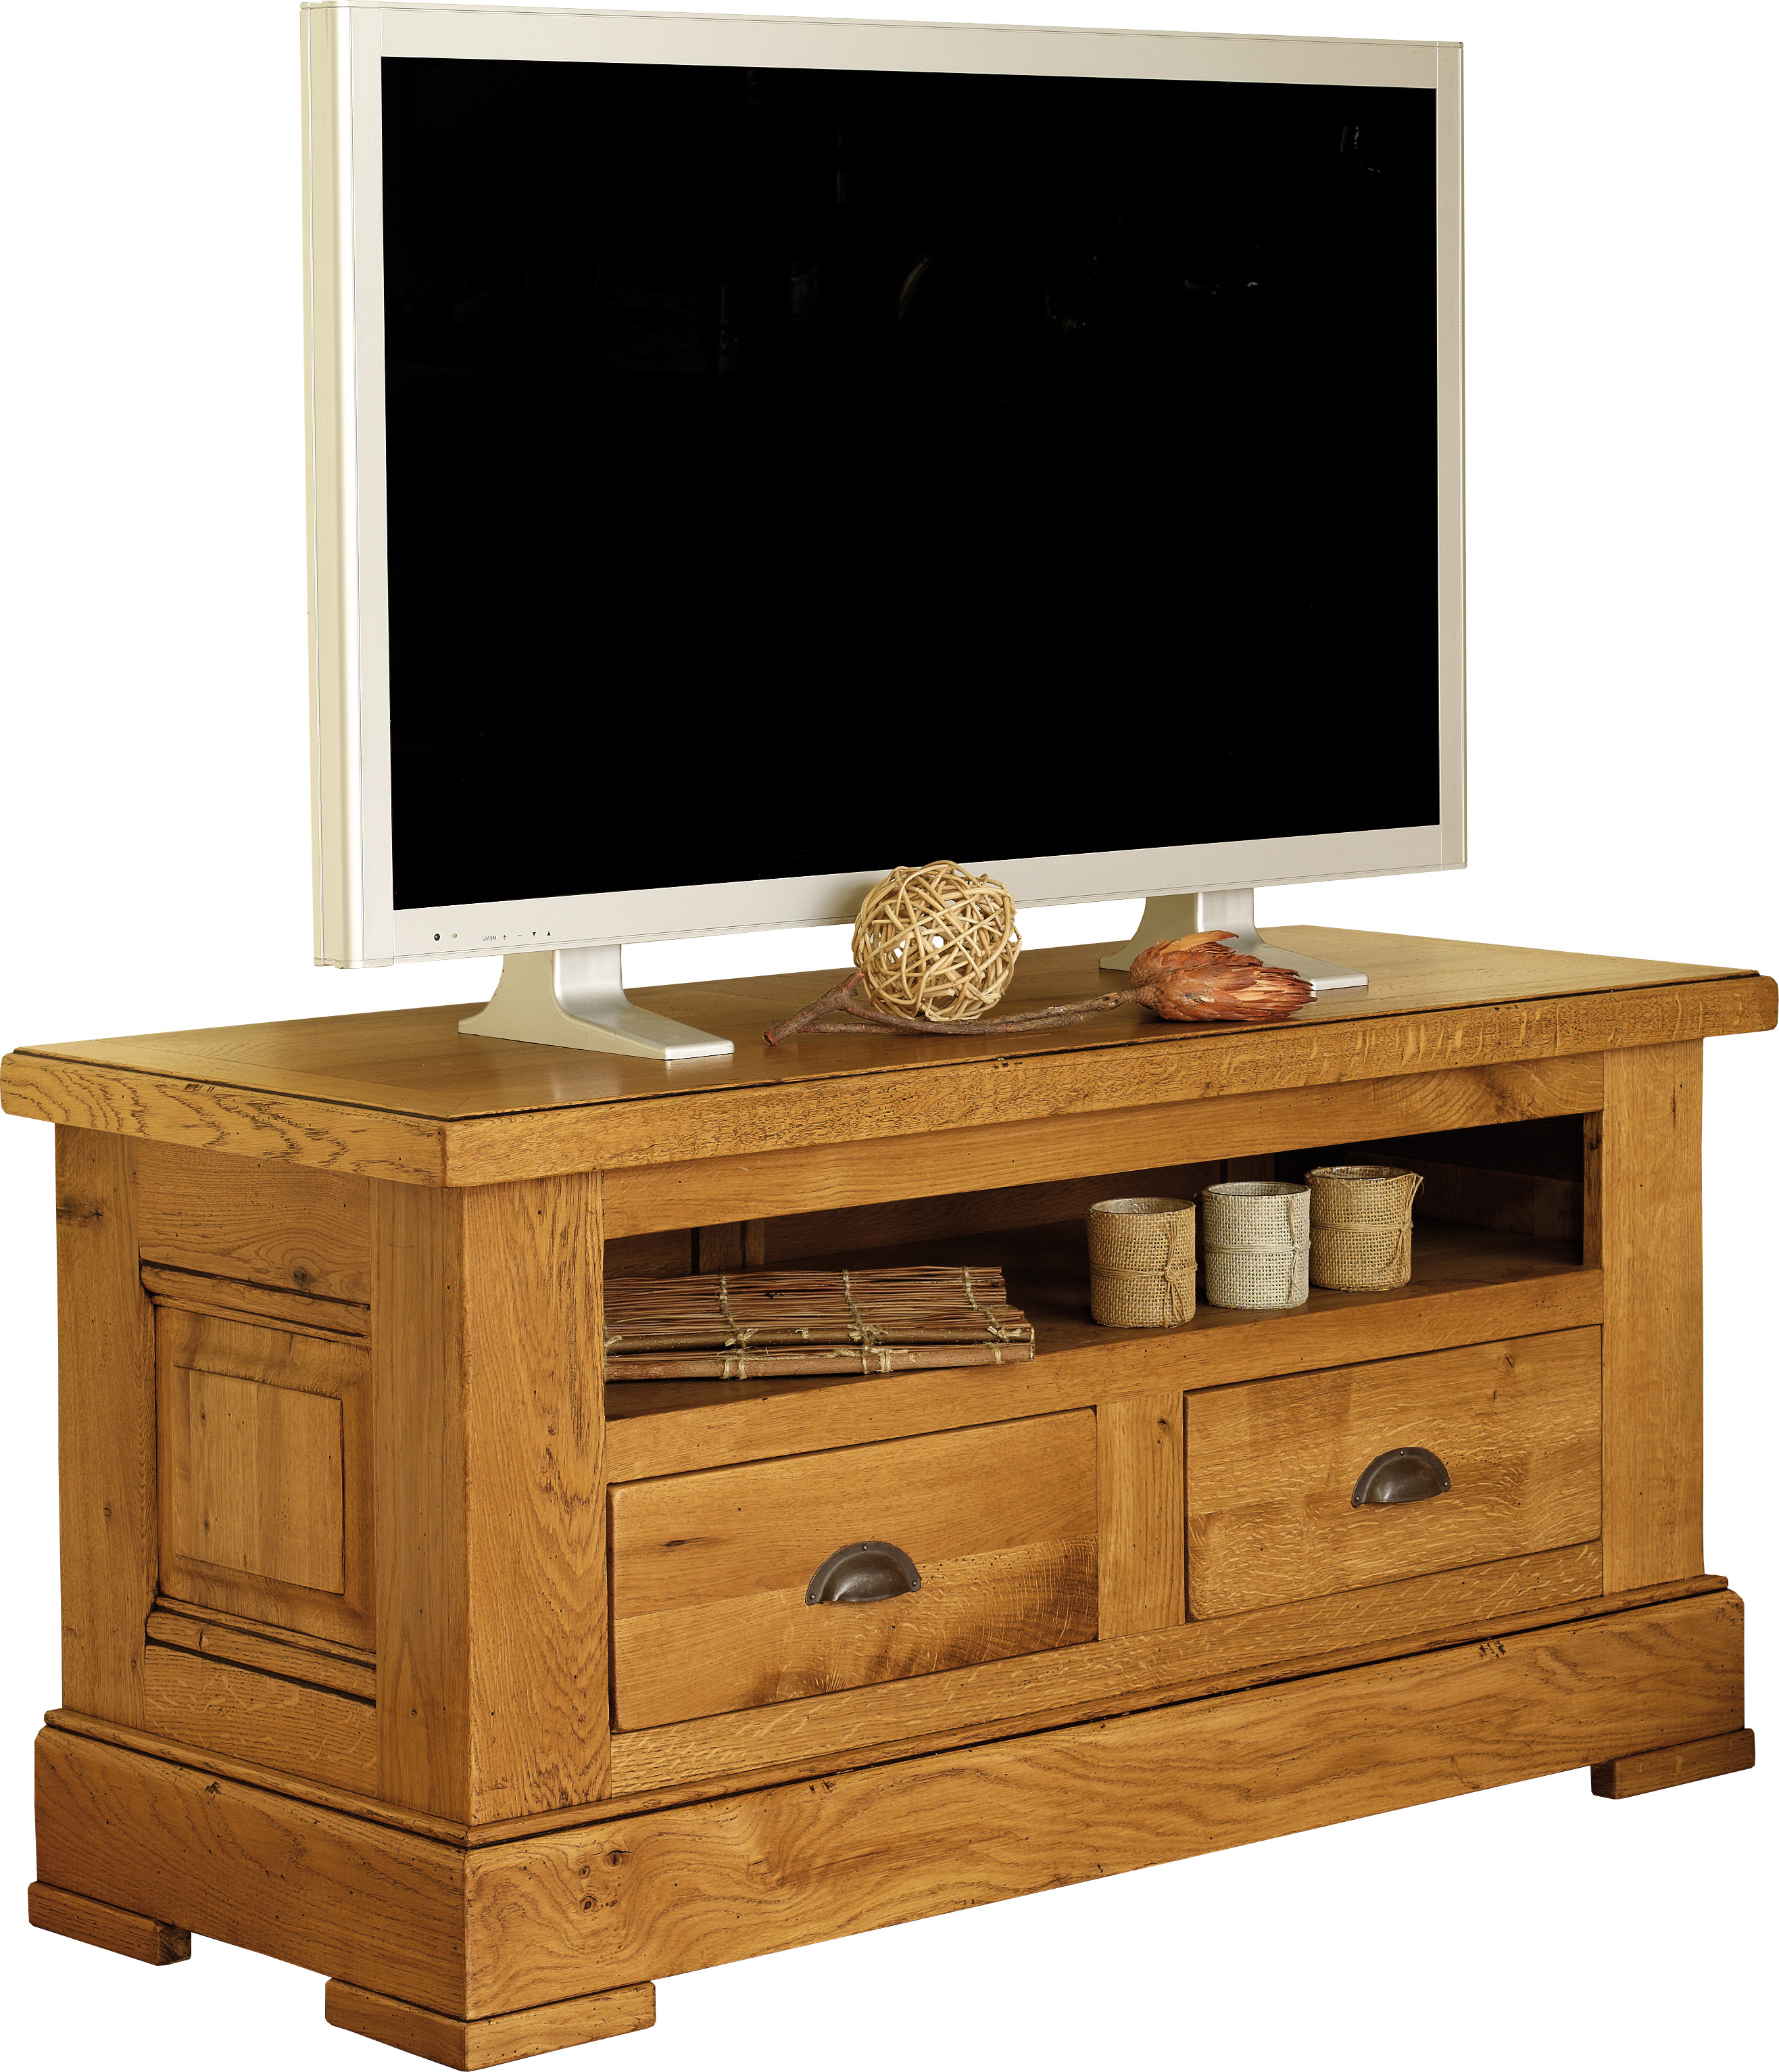 meuble tv chene patine chene patine trouvez chene patine parmis nos meubles de television. Black Bedroom Furniture Sets. Home Design Ideas